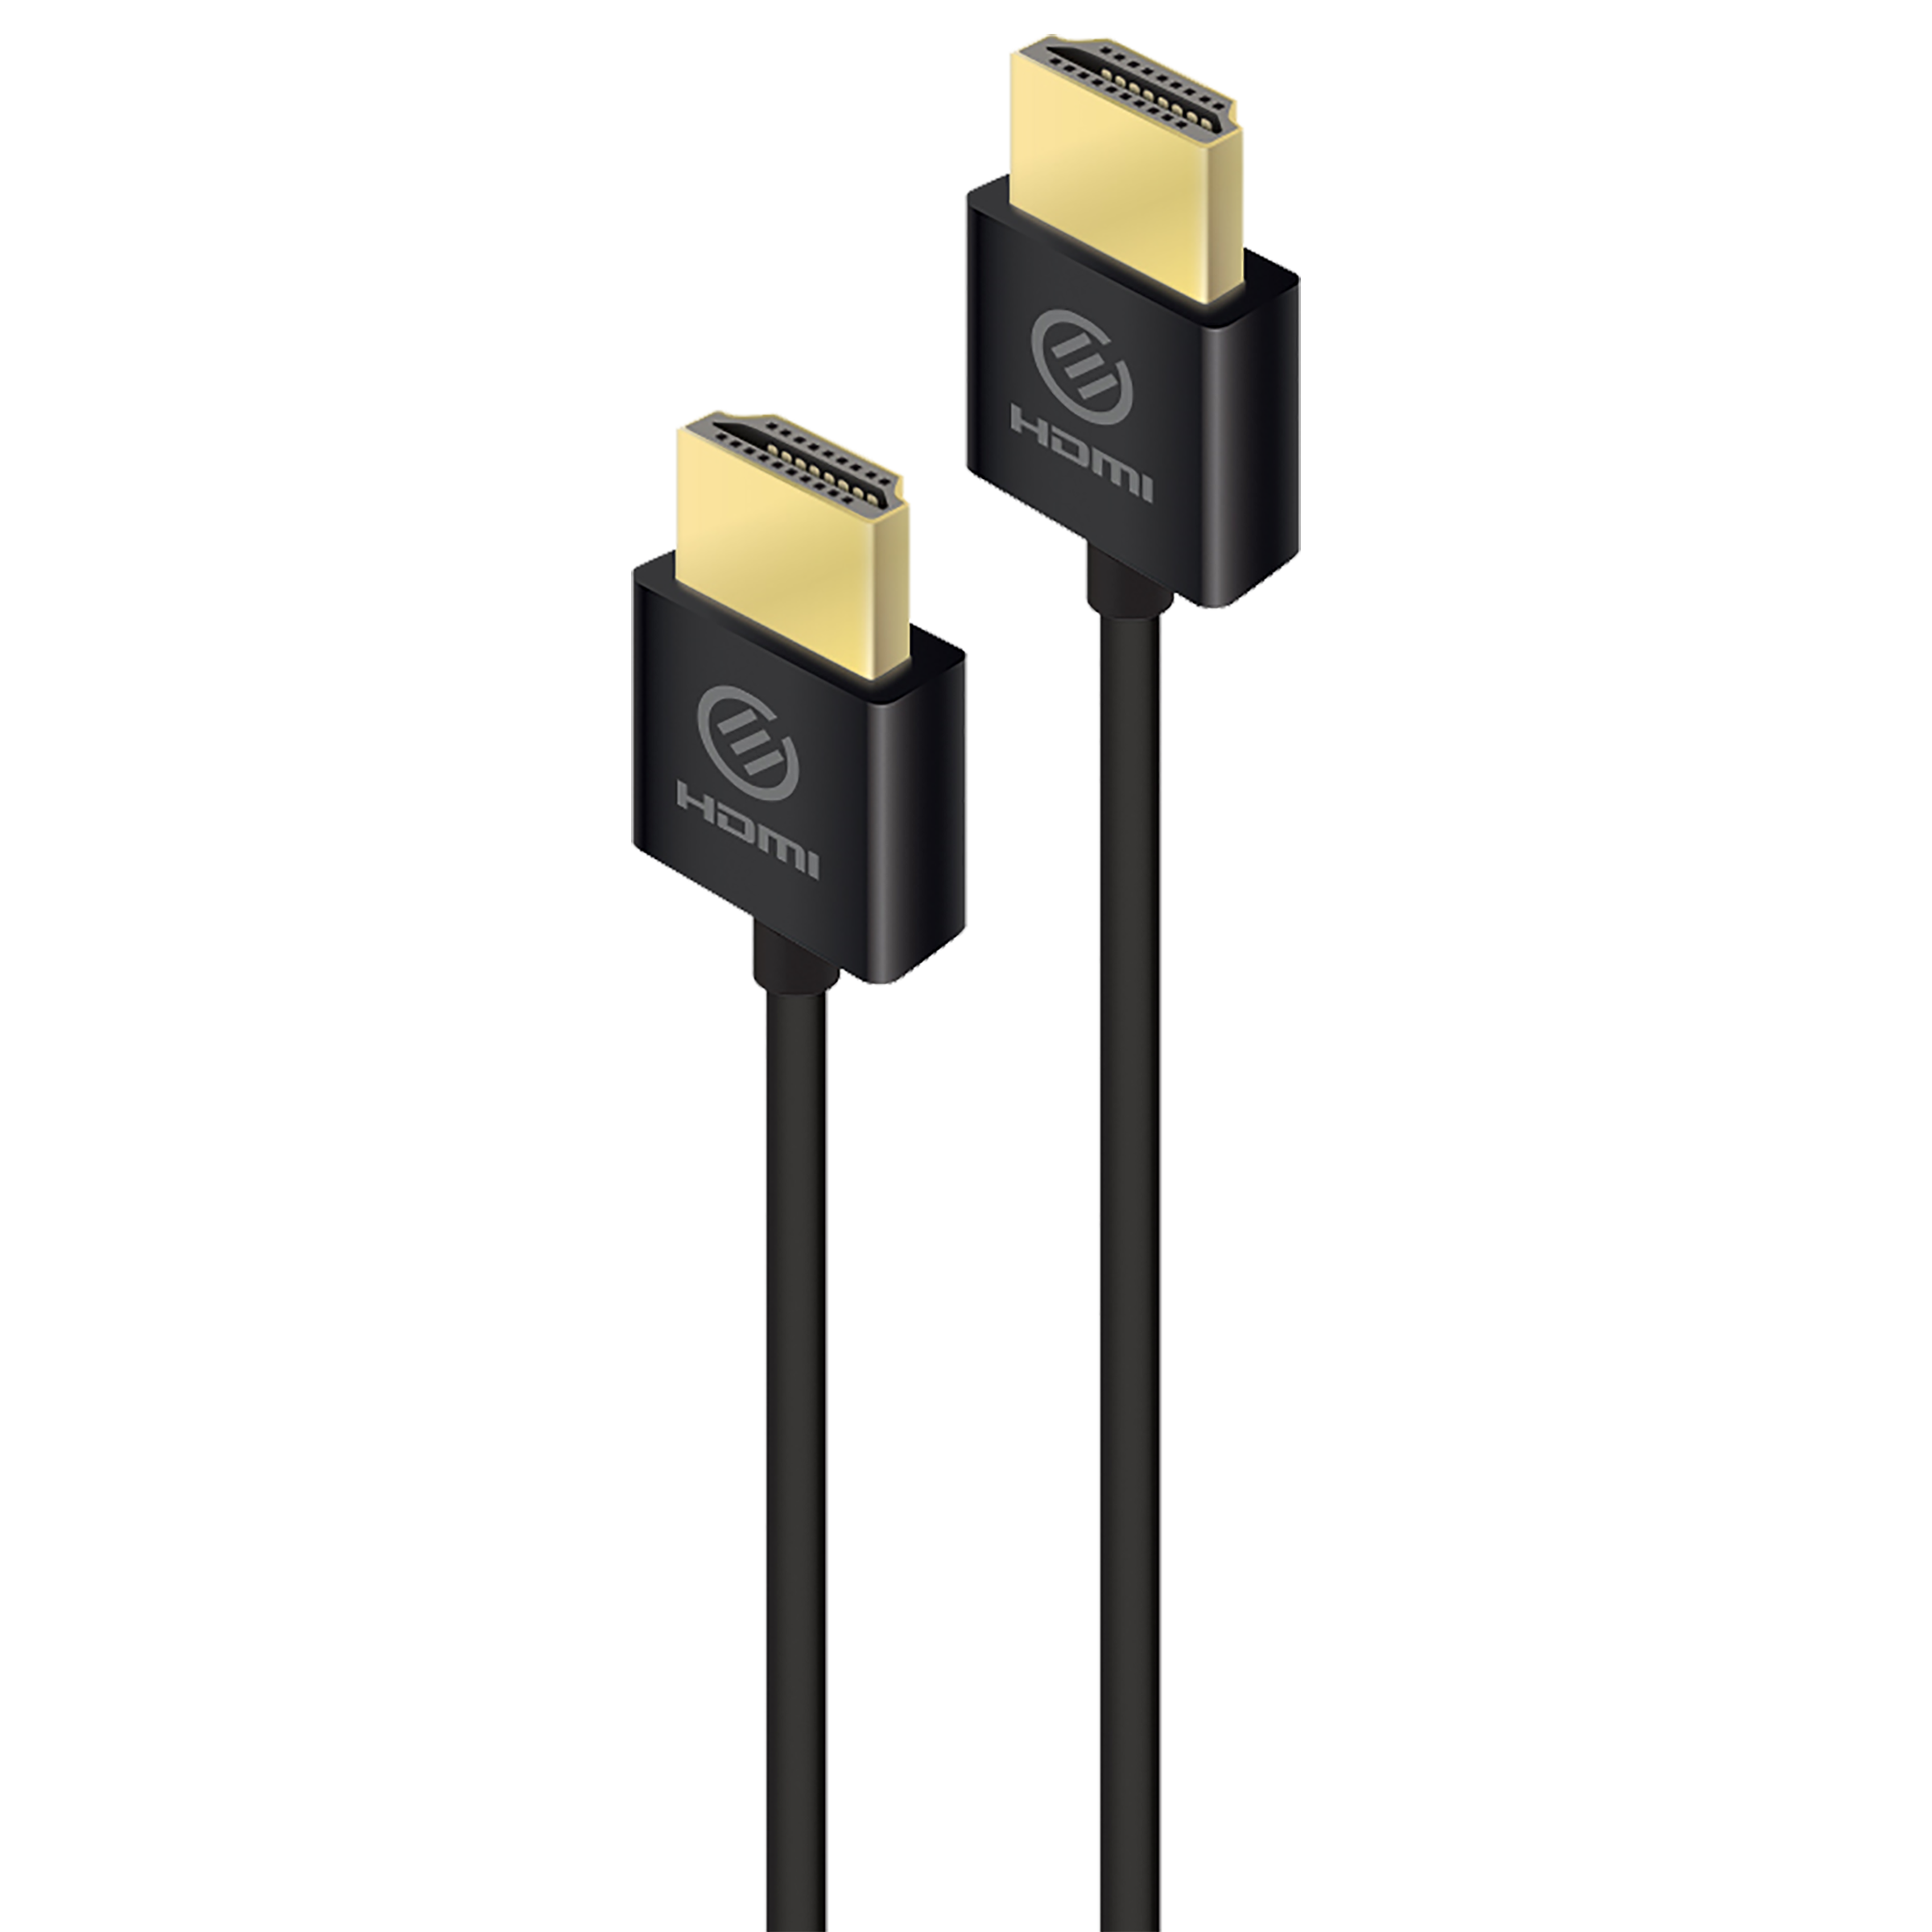 Alogic Air Series 2 Meter HDMI (Type-A) to HDMI (Type-A) Audio & Video HDMI Cable (24K Gold Plated Contacts, HDAS-V202, Black)_1